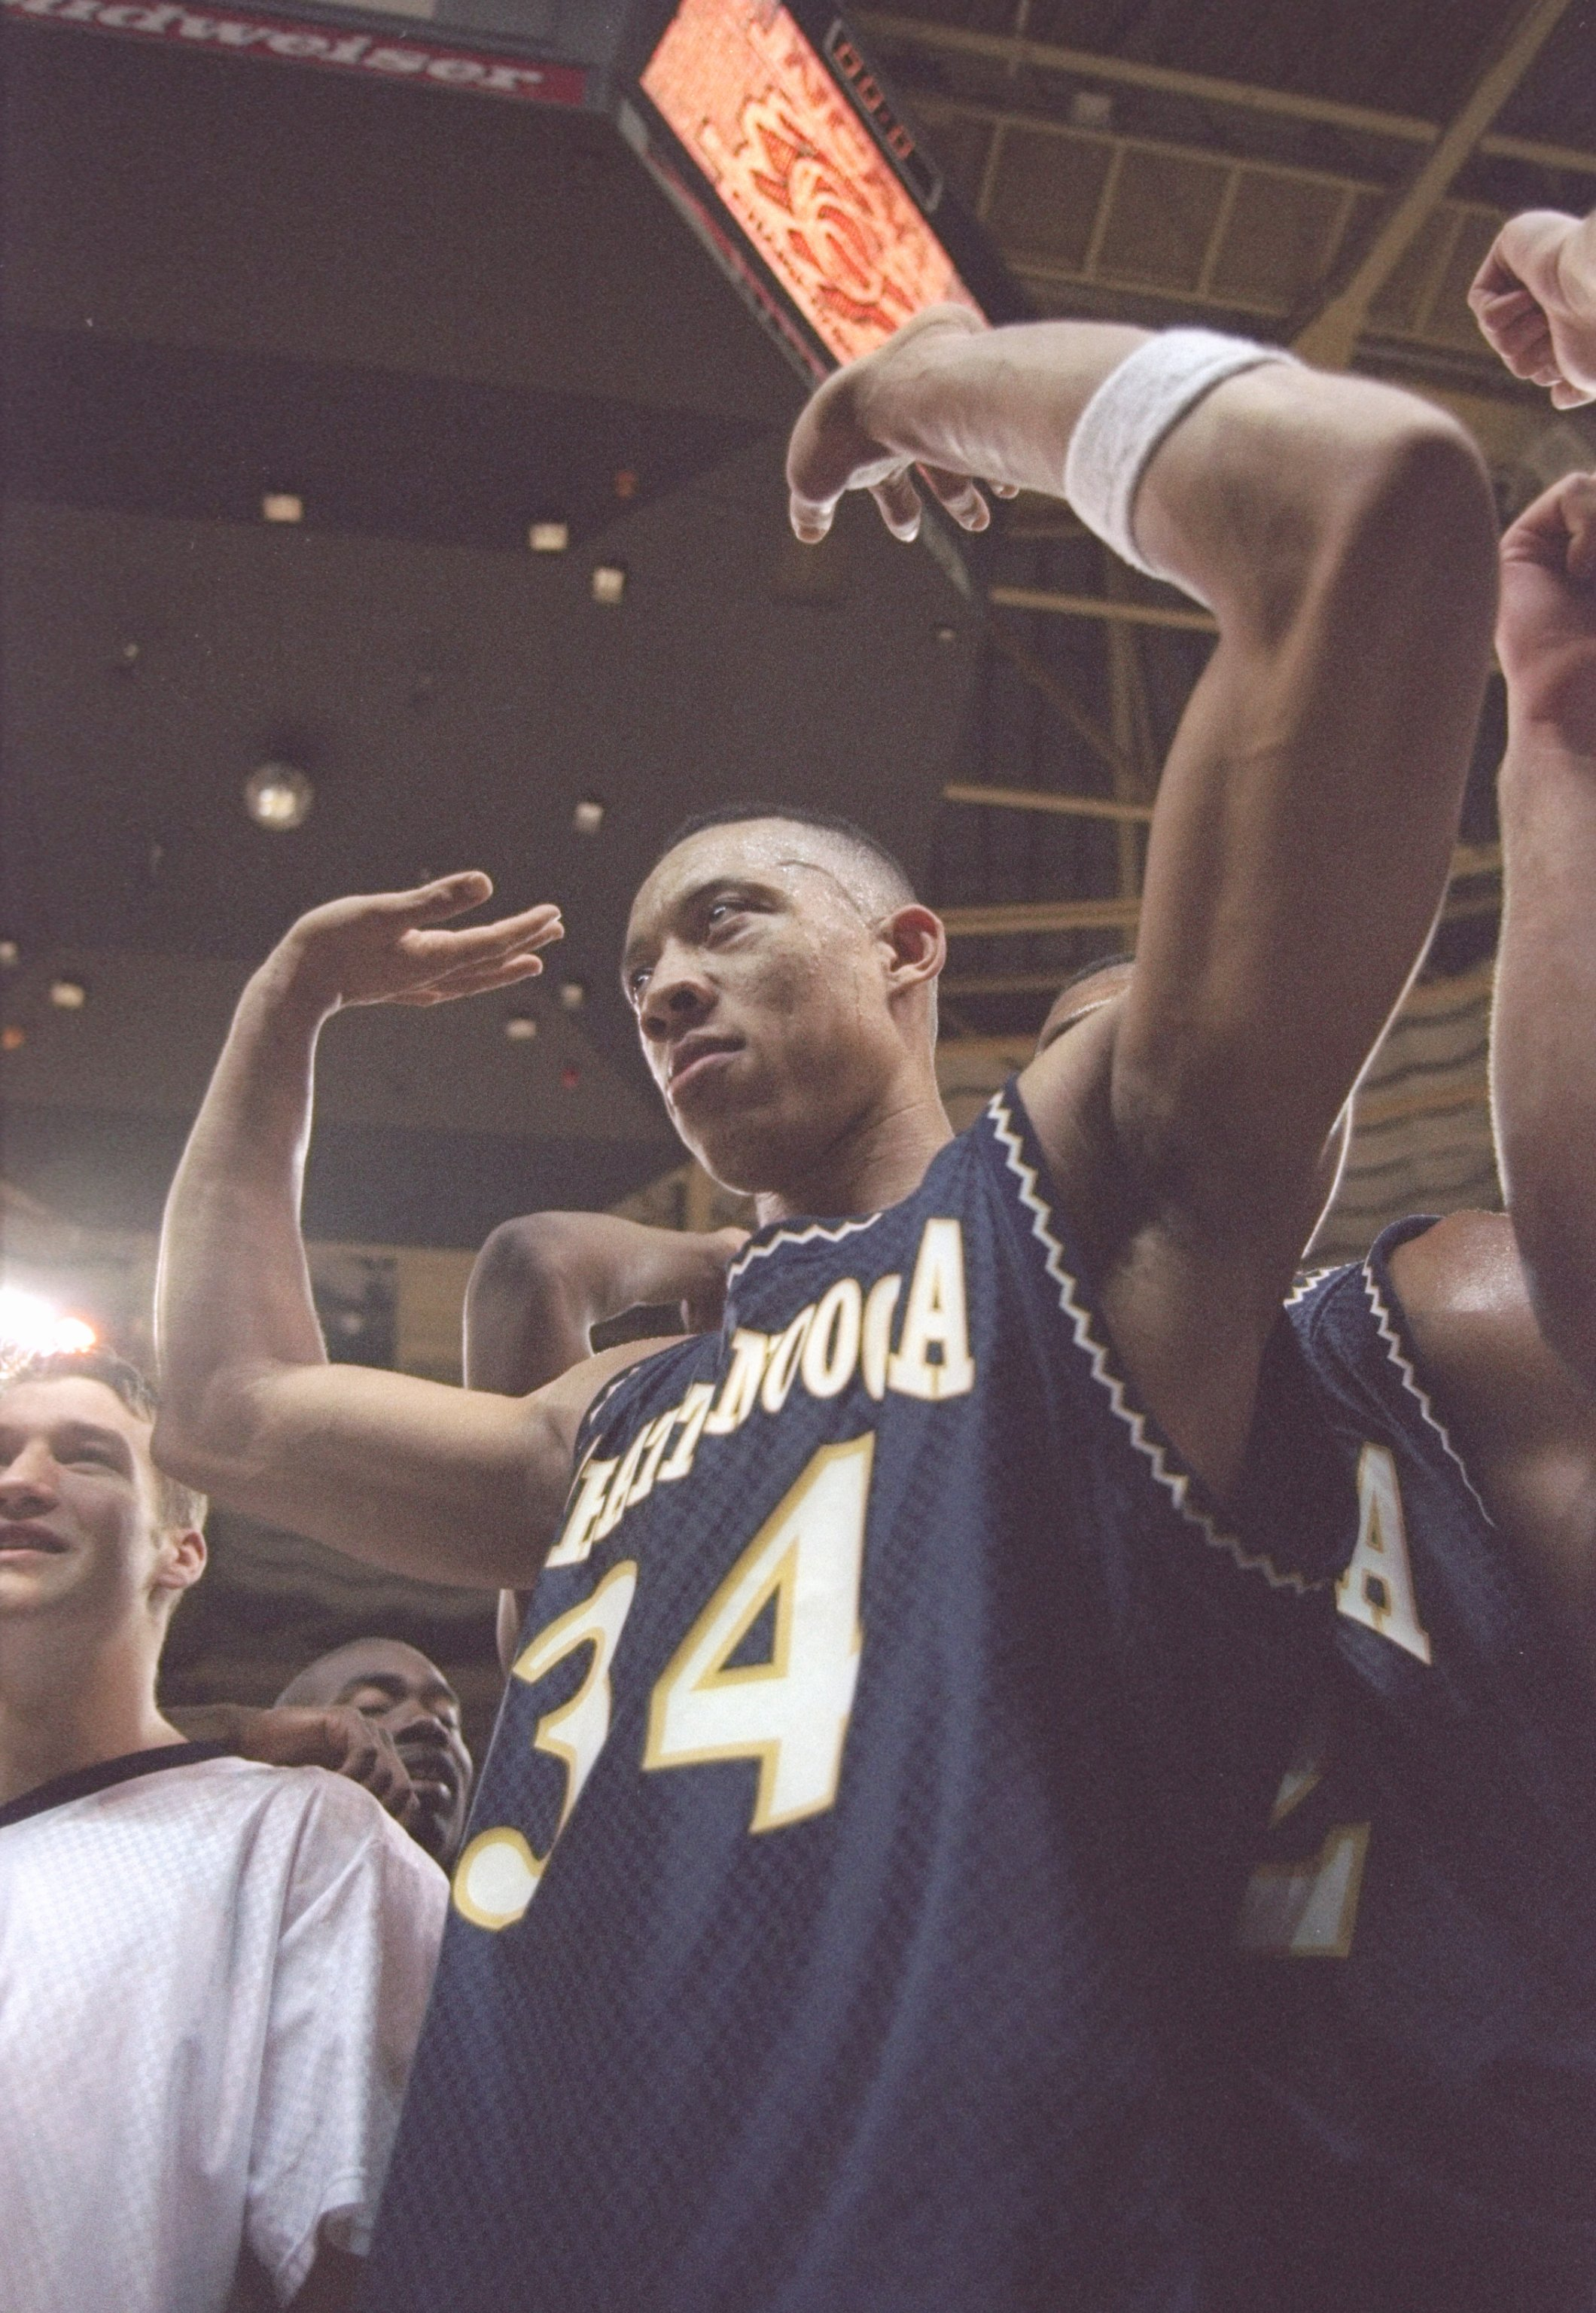 16 Mar 1997: Center Chris Mims of University of Tennessee at Chattanooga Moccasins celebrates after a playoff game against the Illinois Fighting Illini at the Charlotte Coliseum in Charlotte, North Carolina. Chatanooga won the game 73 - 63.